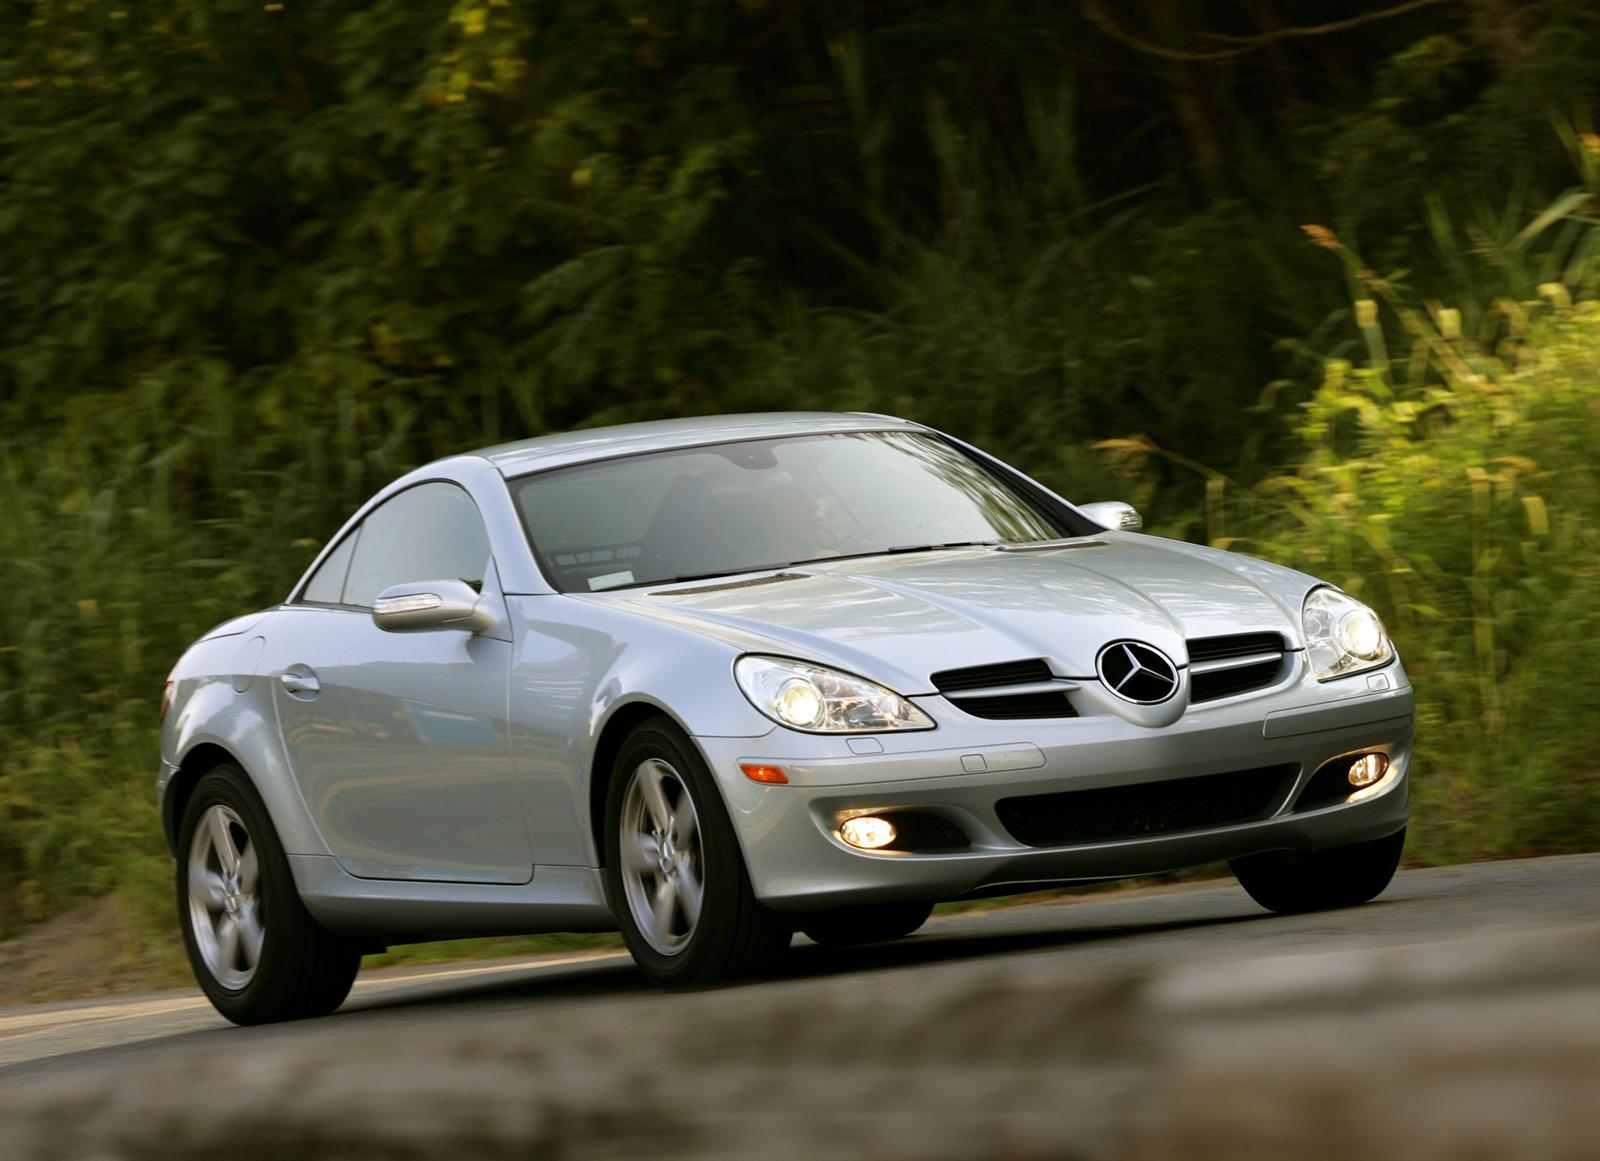 Mercedes-benz slk280 photo - 6